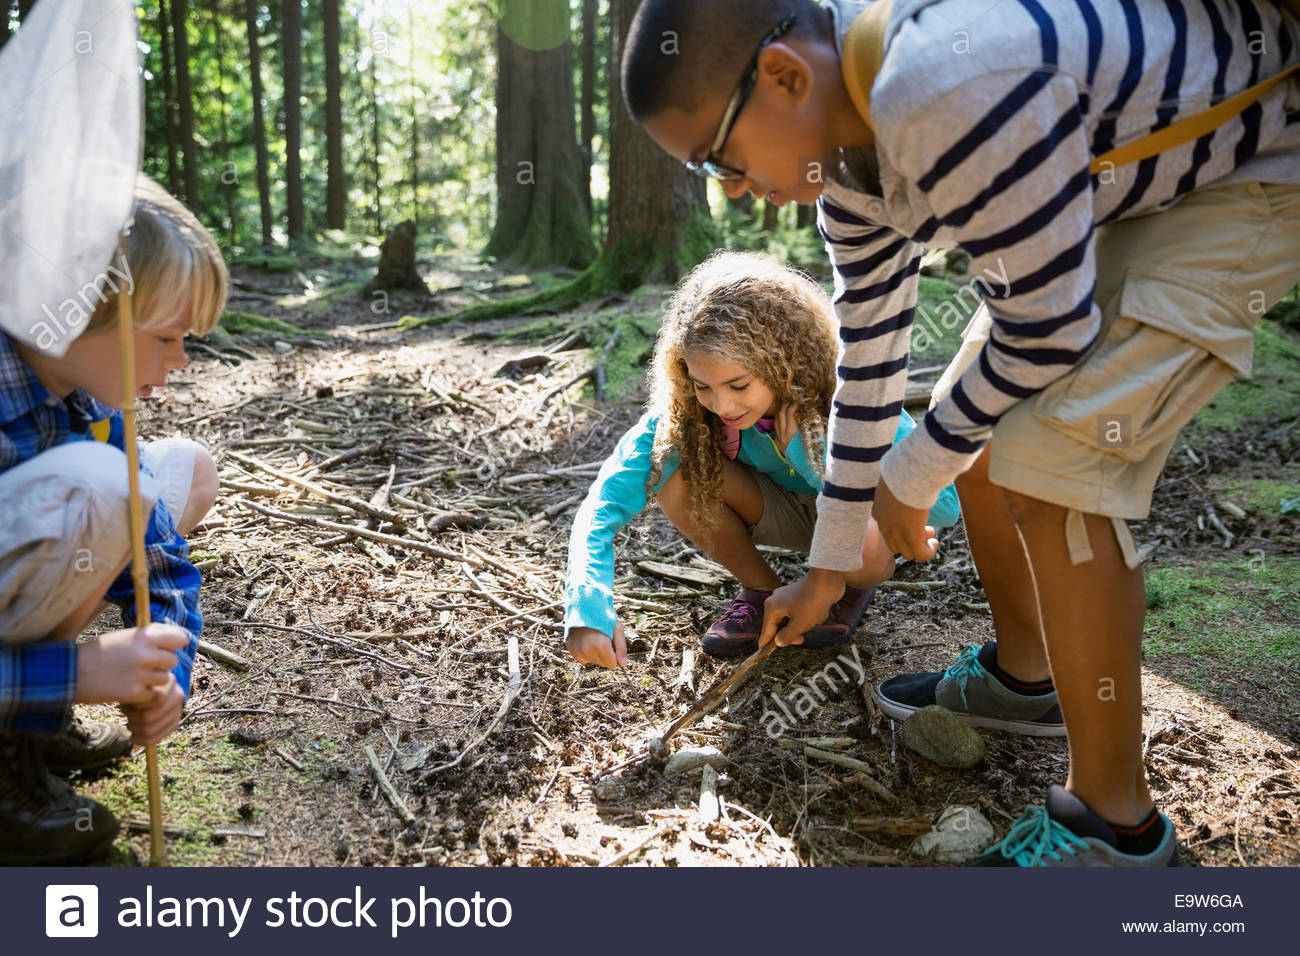 Children poking at ground with sticks in woods - Stock Image